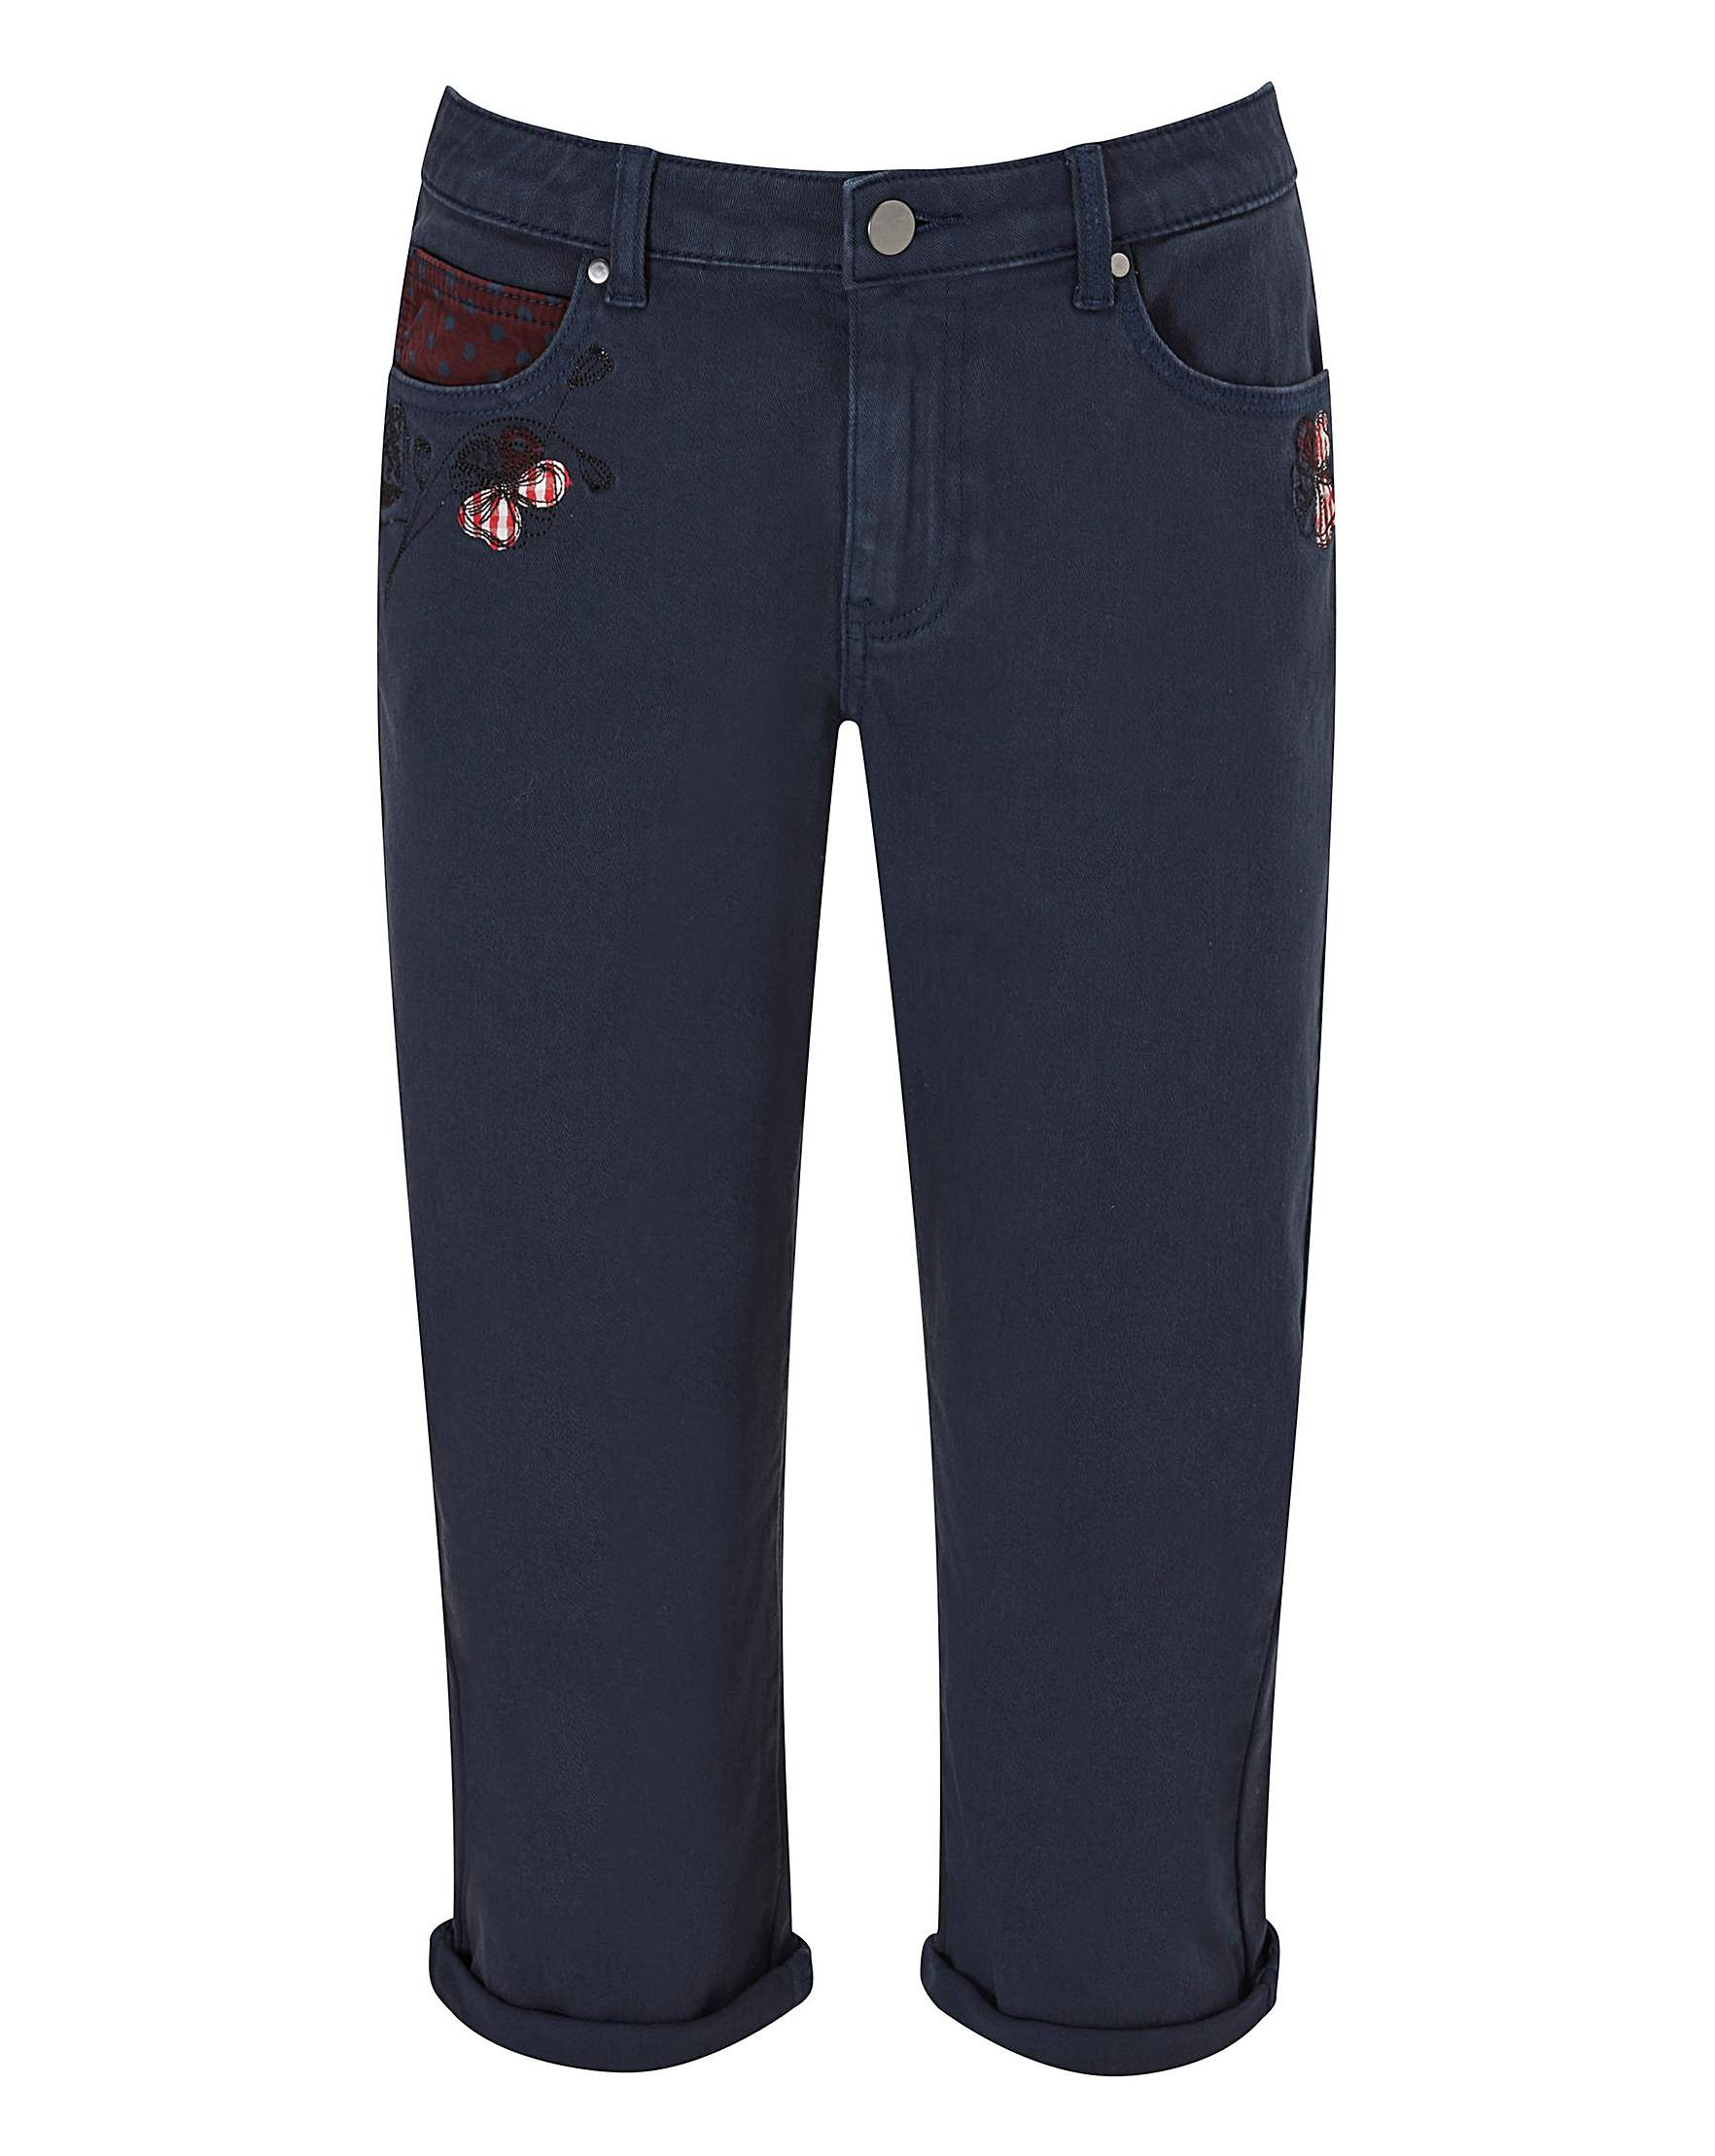 92f9adef5e0473 Joe Browns Remarkable Crop Trousers | Simply Be